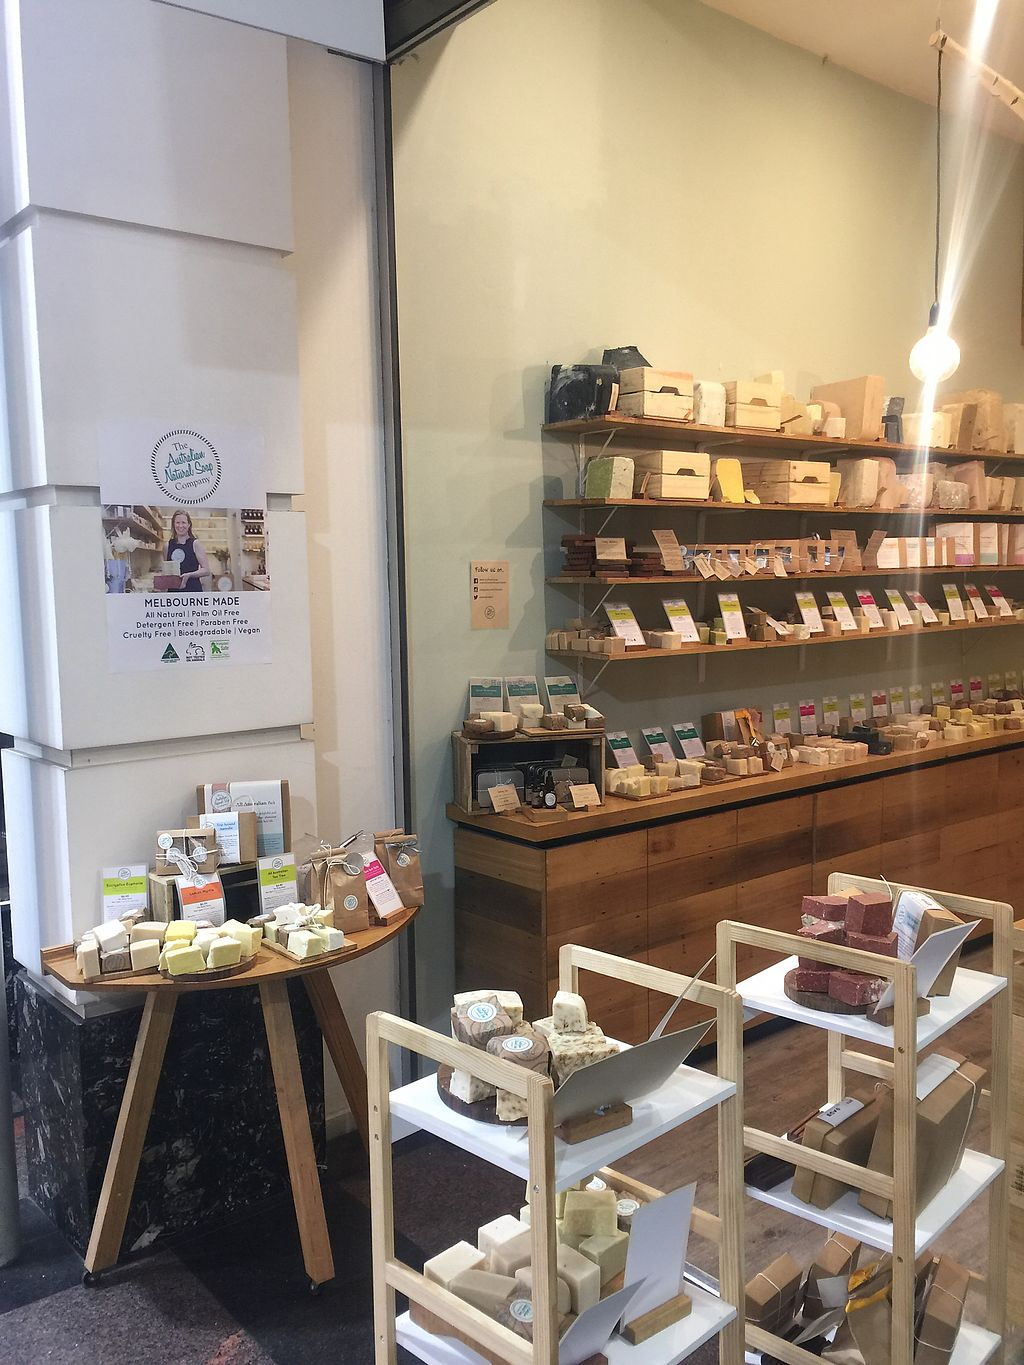 """Photo of Australian Natural Soap Company  by <a href=""""/members/profile/Tiggy"""">Tiggy</a> <br/>Shop display <br/> February 25, 2018  - <a href='/contact/abuse/image/112995/363784'>Report</a>"""